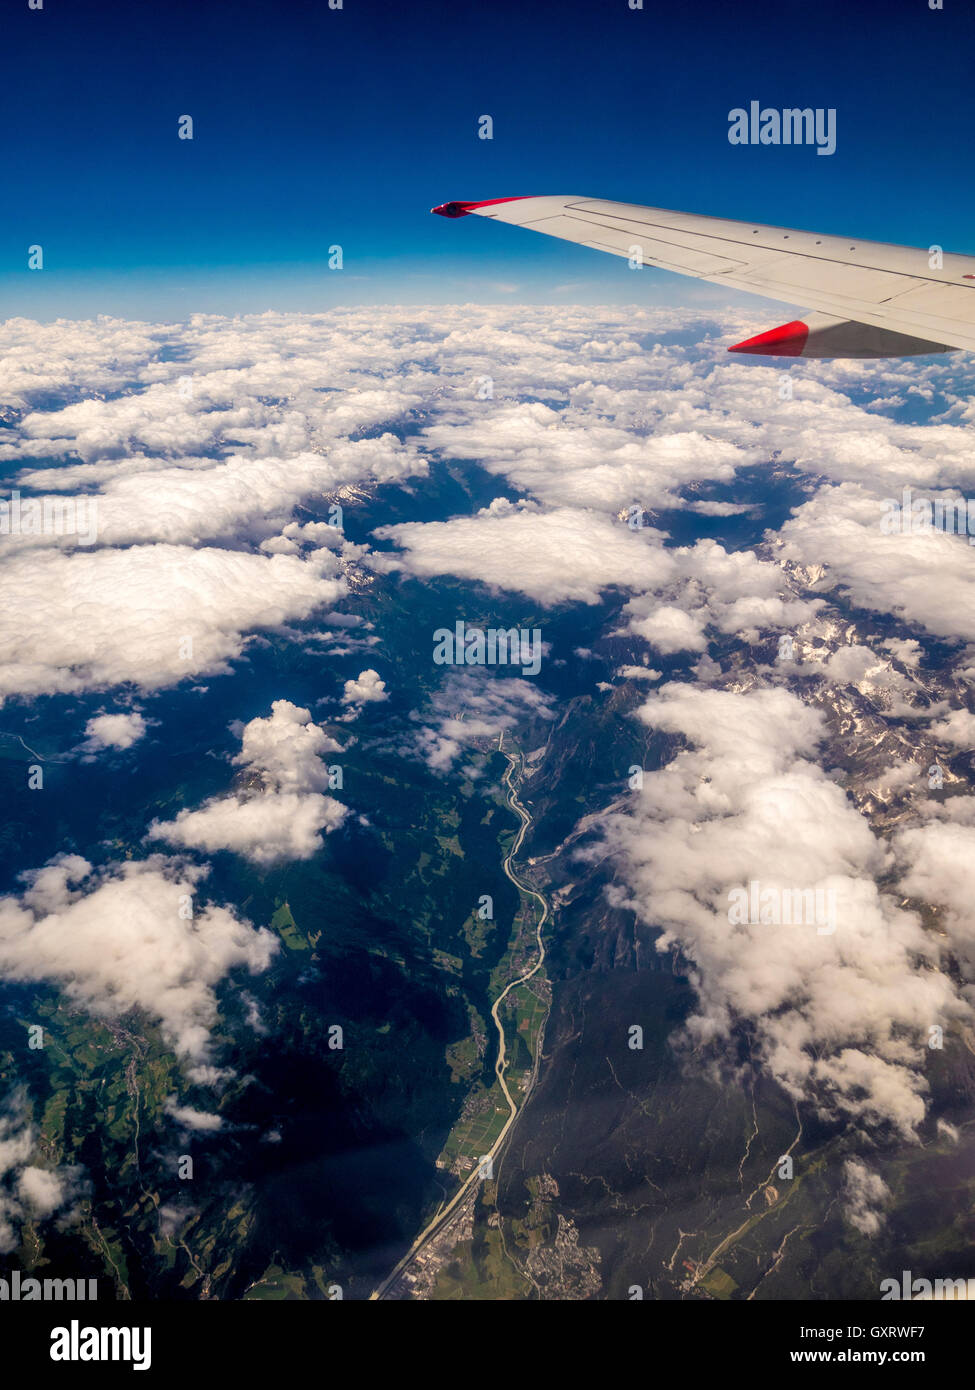 View through plane window over Alps - Stock Image